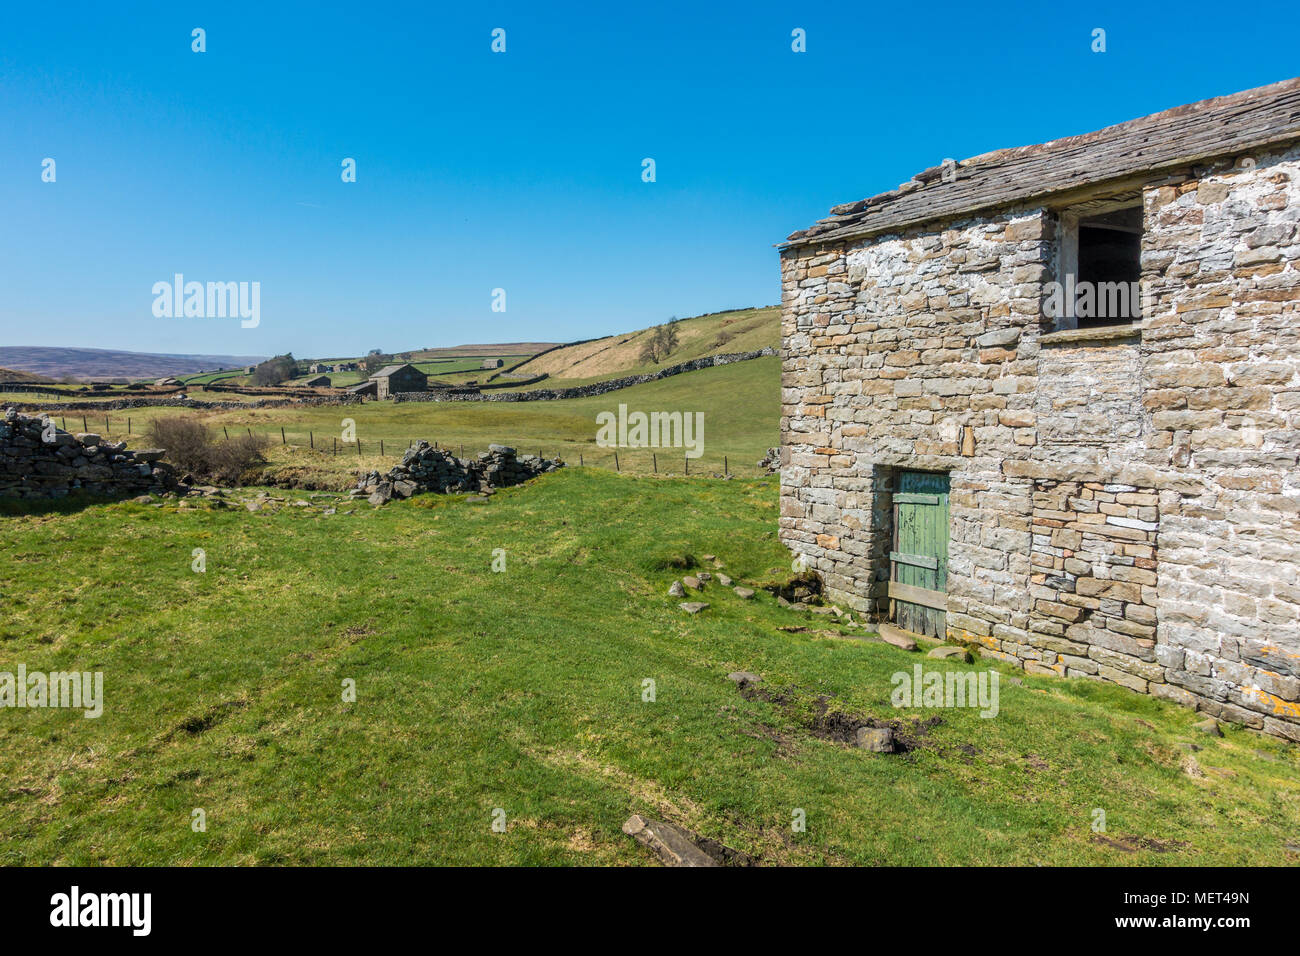 The beautiful old stone barns of Swaledale, Yorkshire Dales - Stock Image